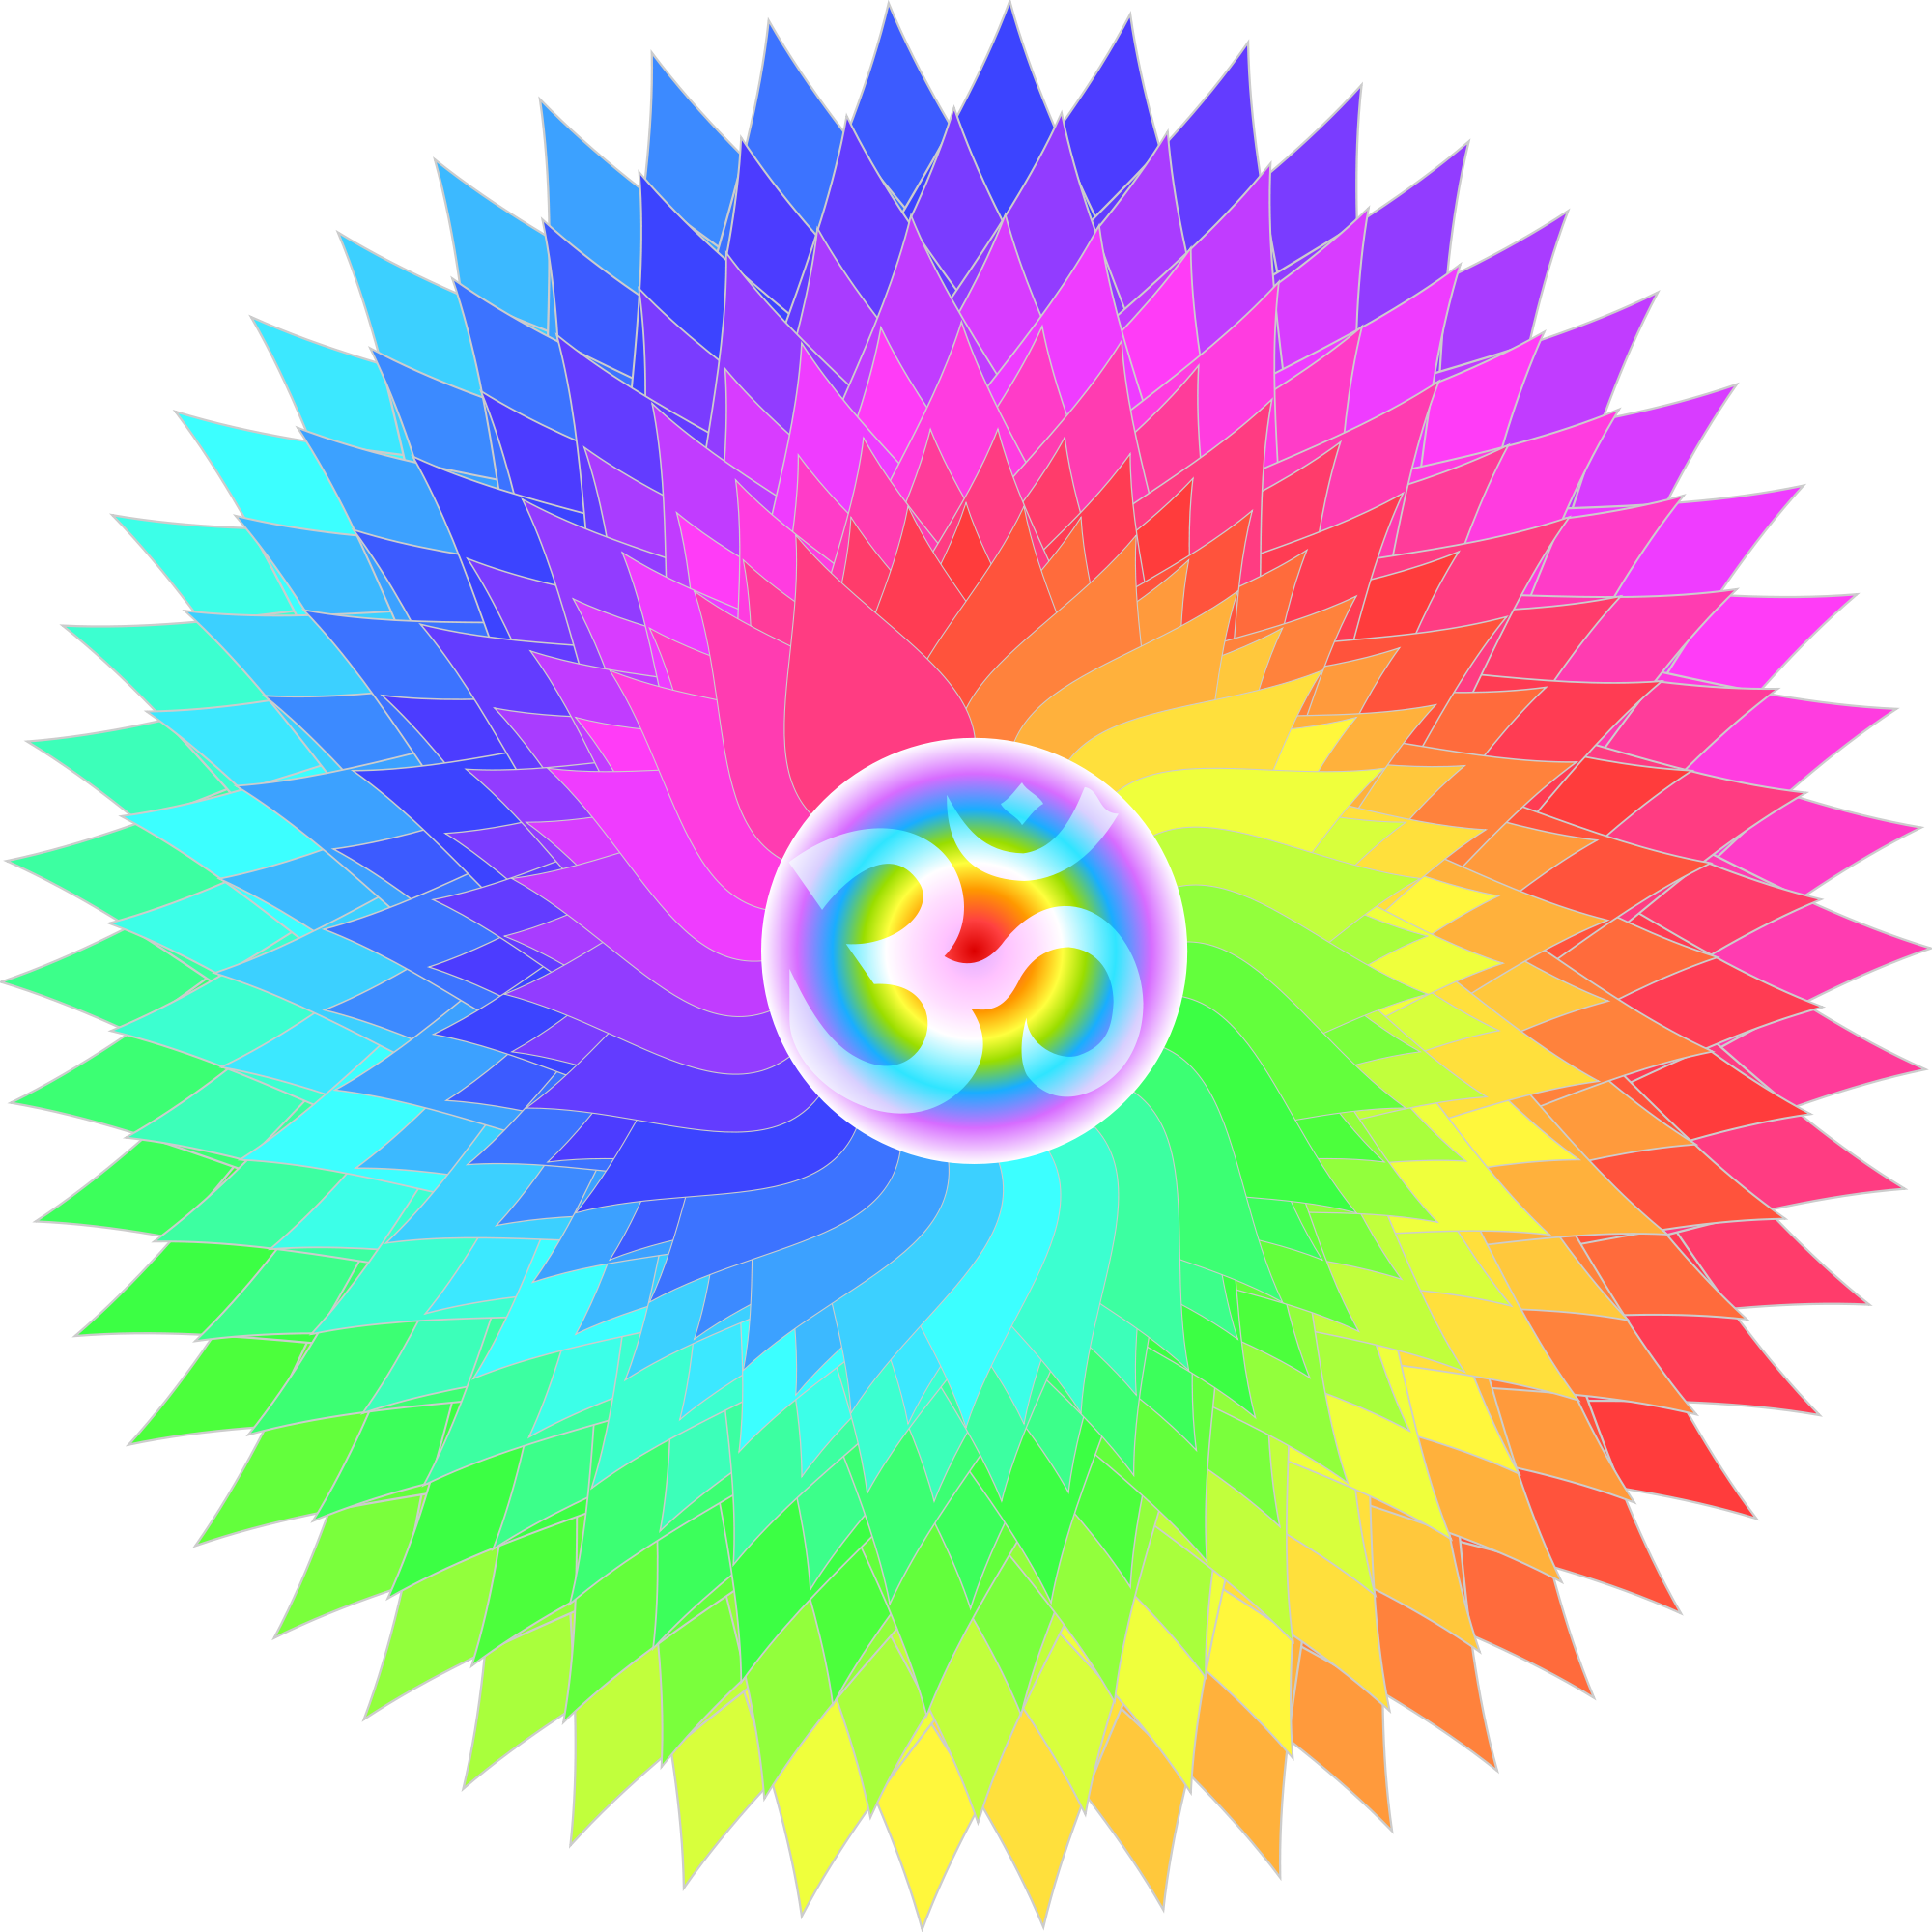 Crown chakra clipart graphic transparent download File:Sahasrara.svg - Wikimedia Commons graphic transparent download